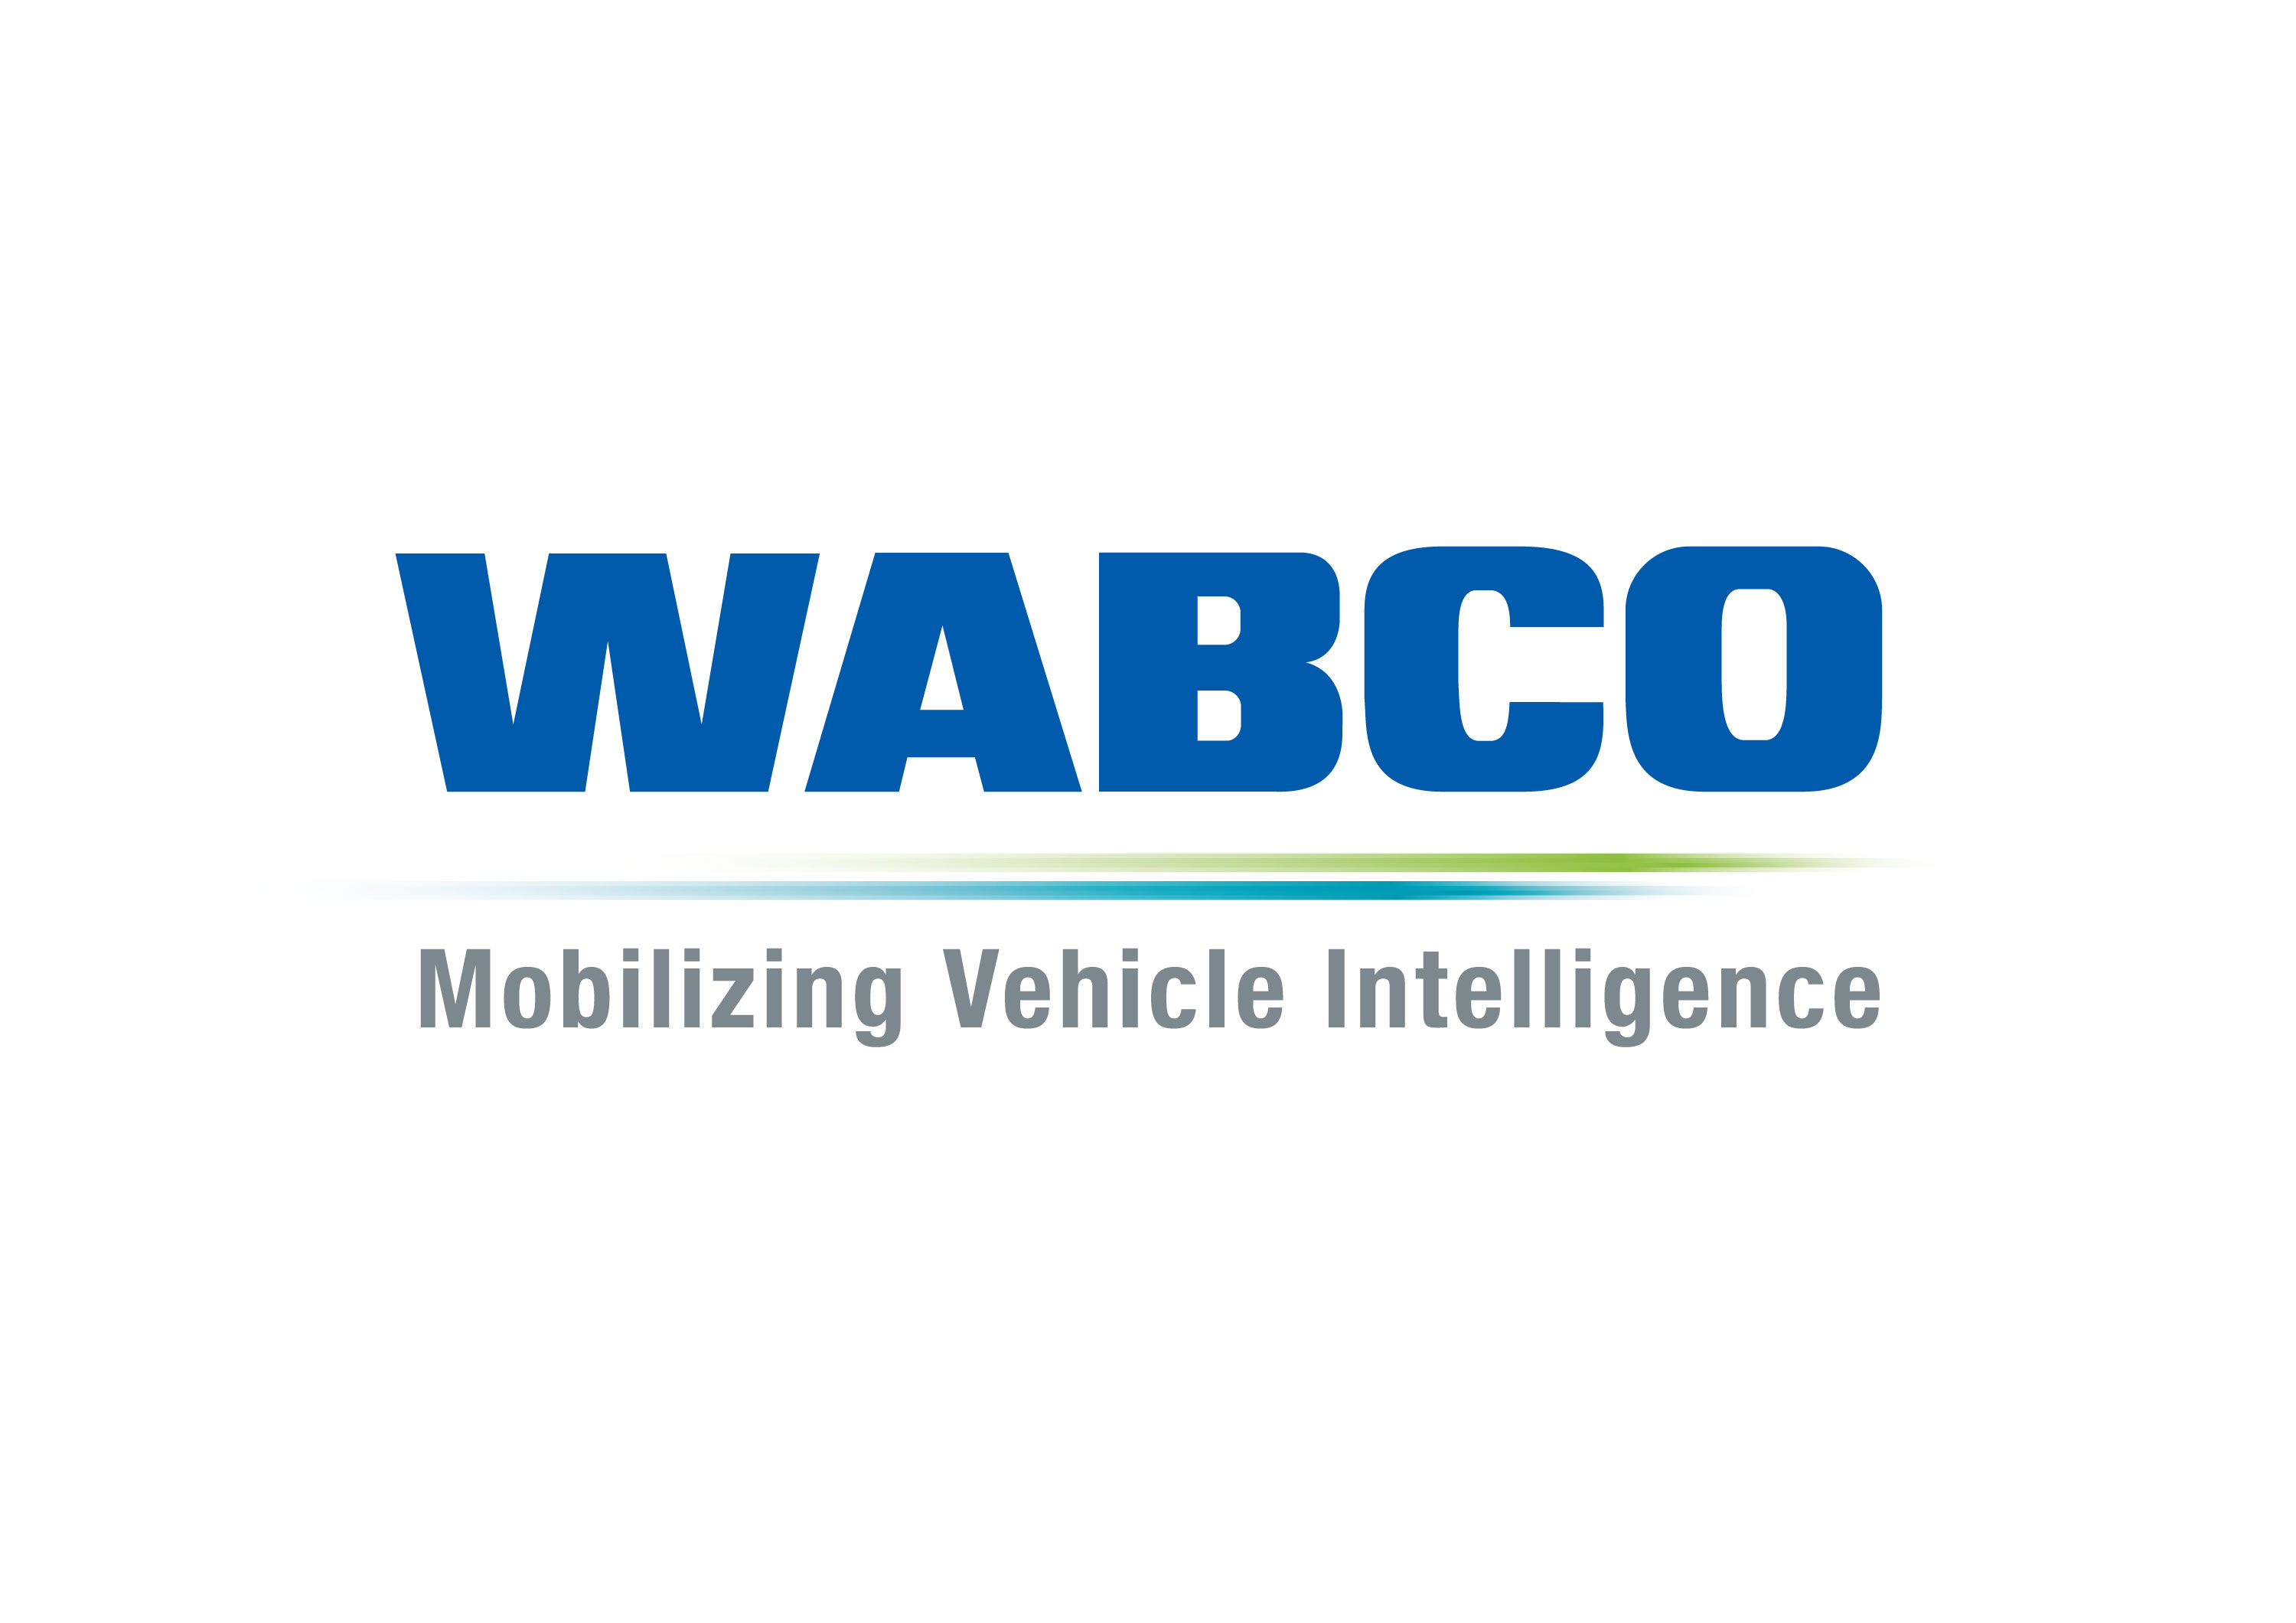 WABCO Logo_Mobilizing Vehicle Intelligence.jpg